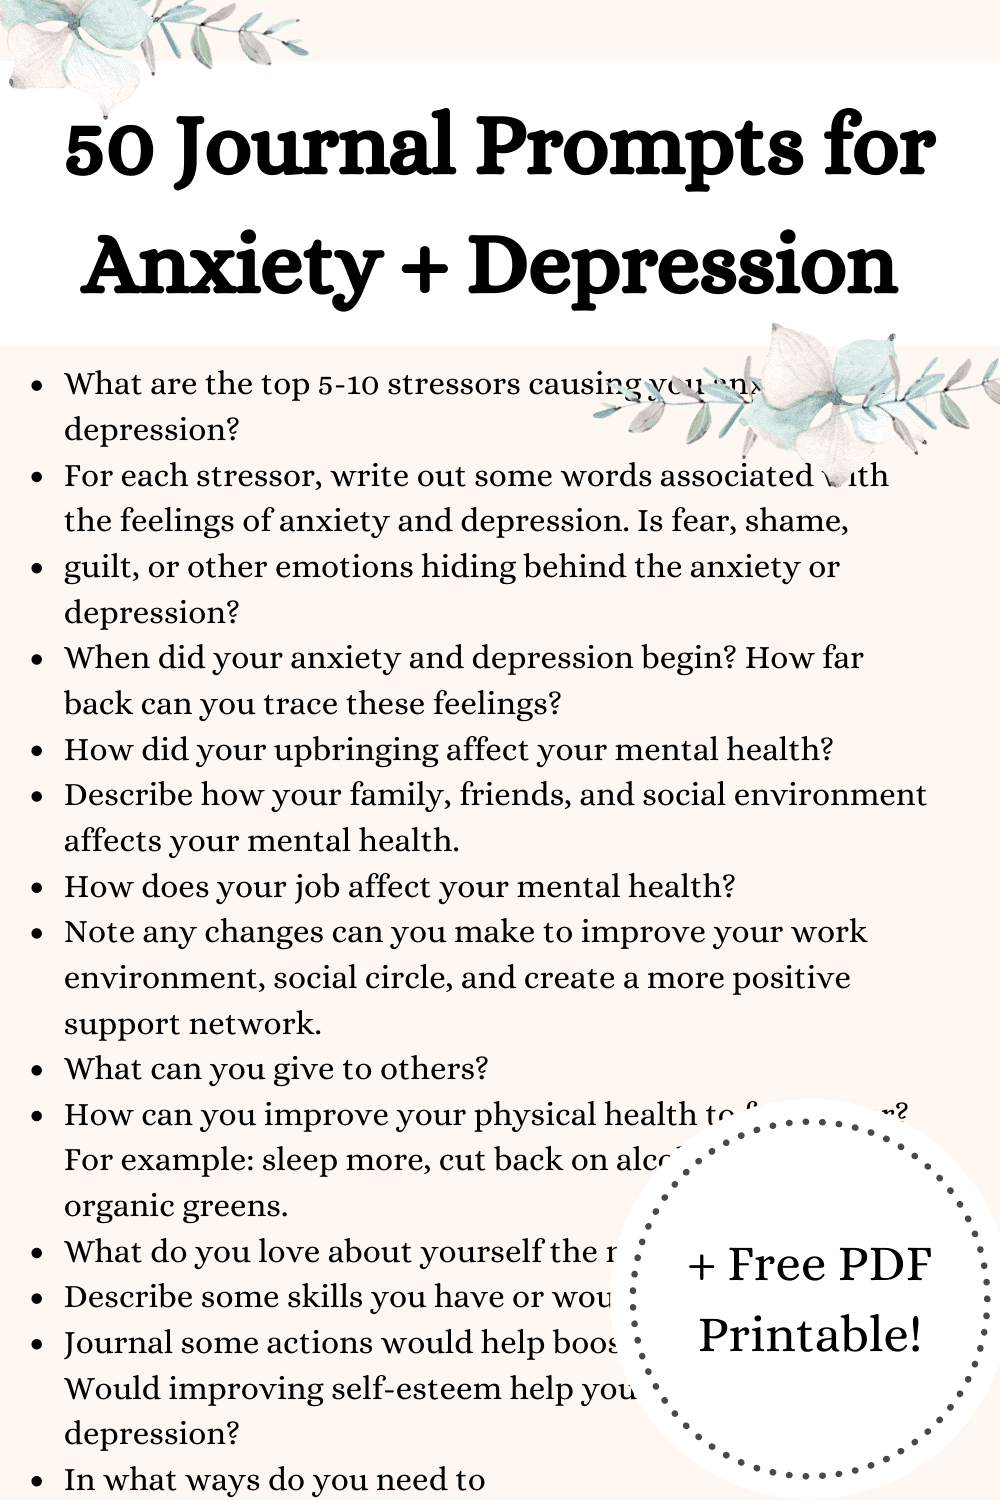 50 Journal Prompts for Anxiety and Depression {+ Free PDF Printable Worksheet!}